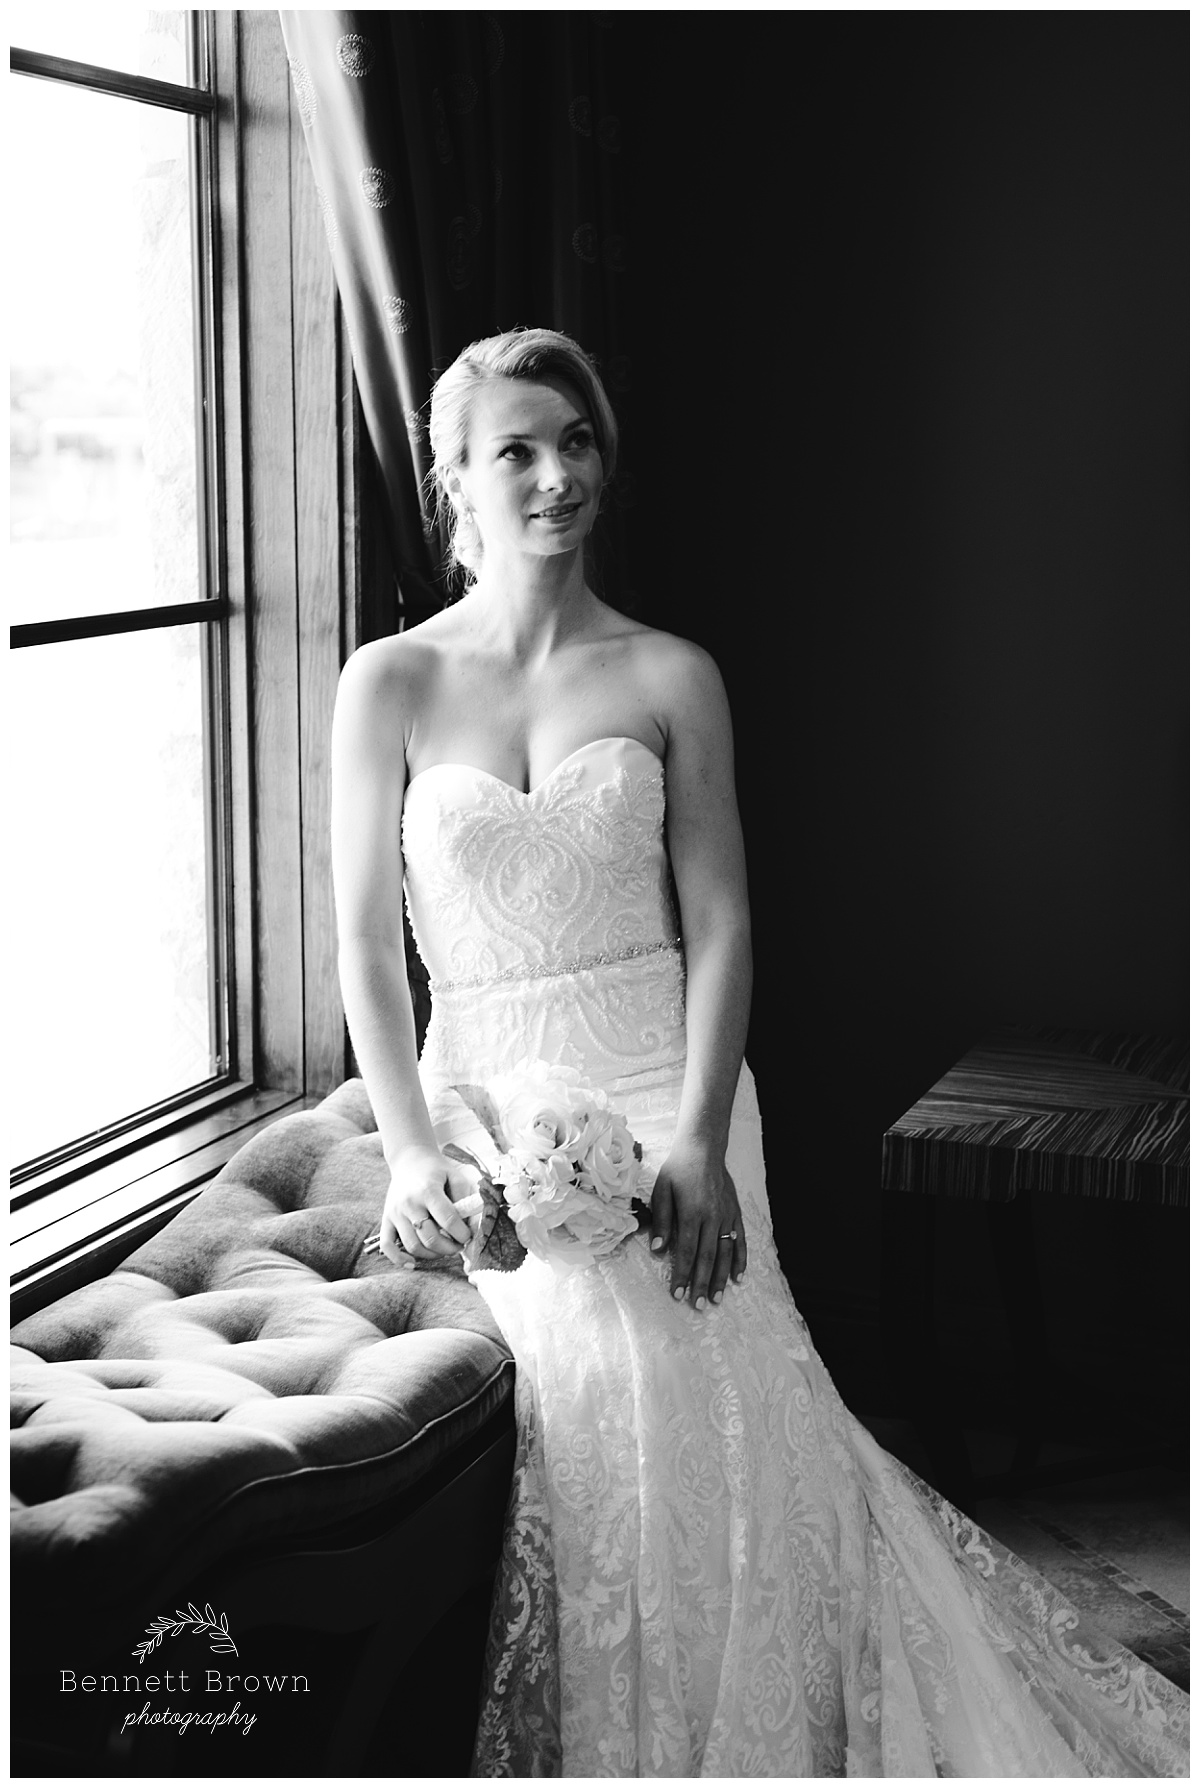 Bennett Brown Photography Bridal Portraits gown beading